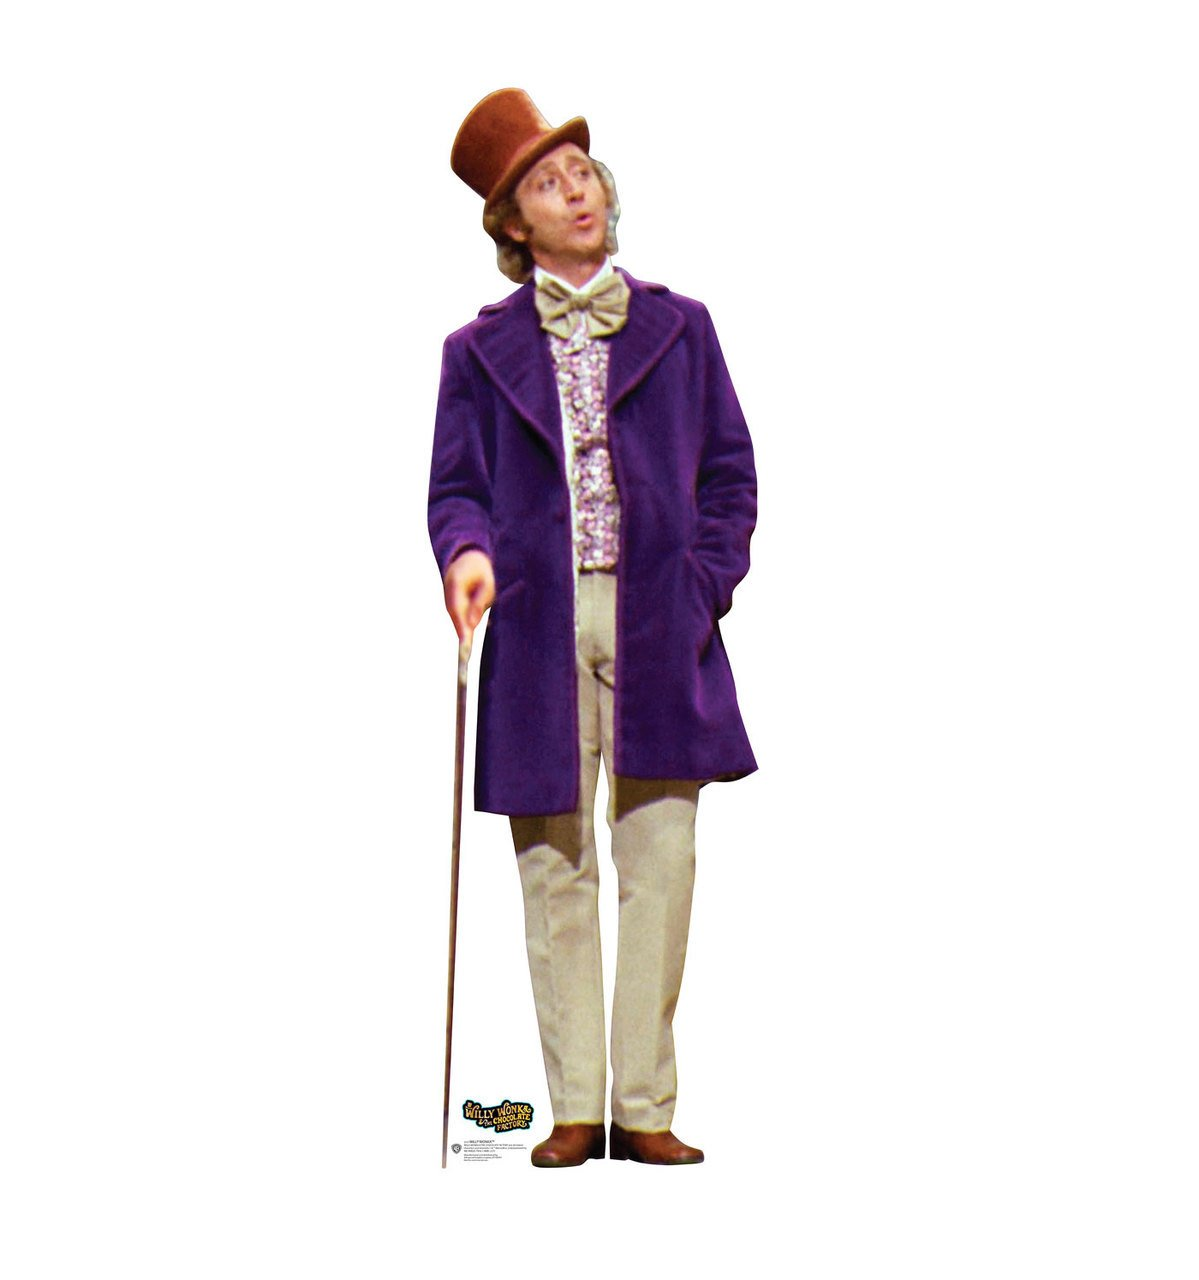 Willy Wonka - Willy Wonka & the Chocolate Factory - Advanced Graphics Life Size Cardboard Standup